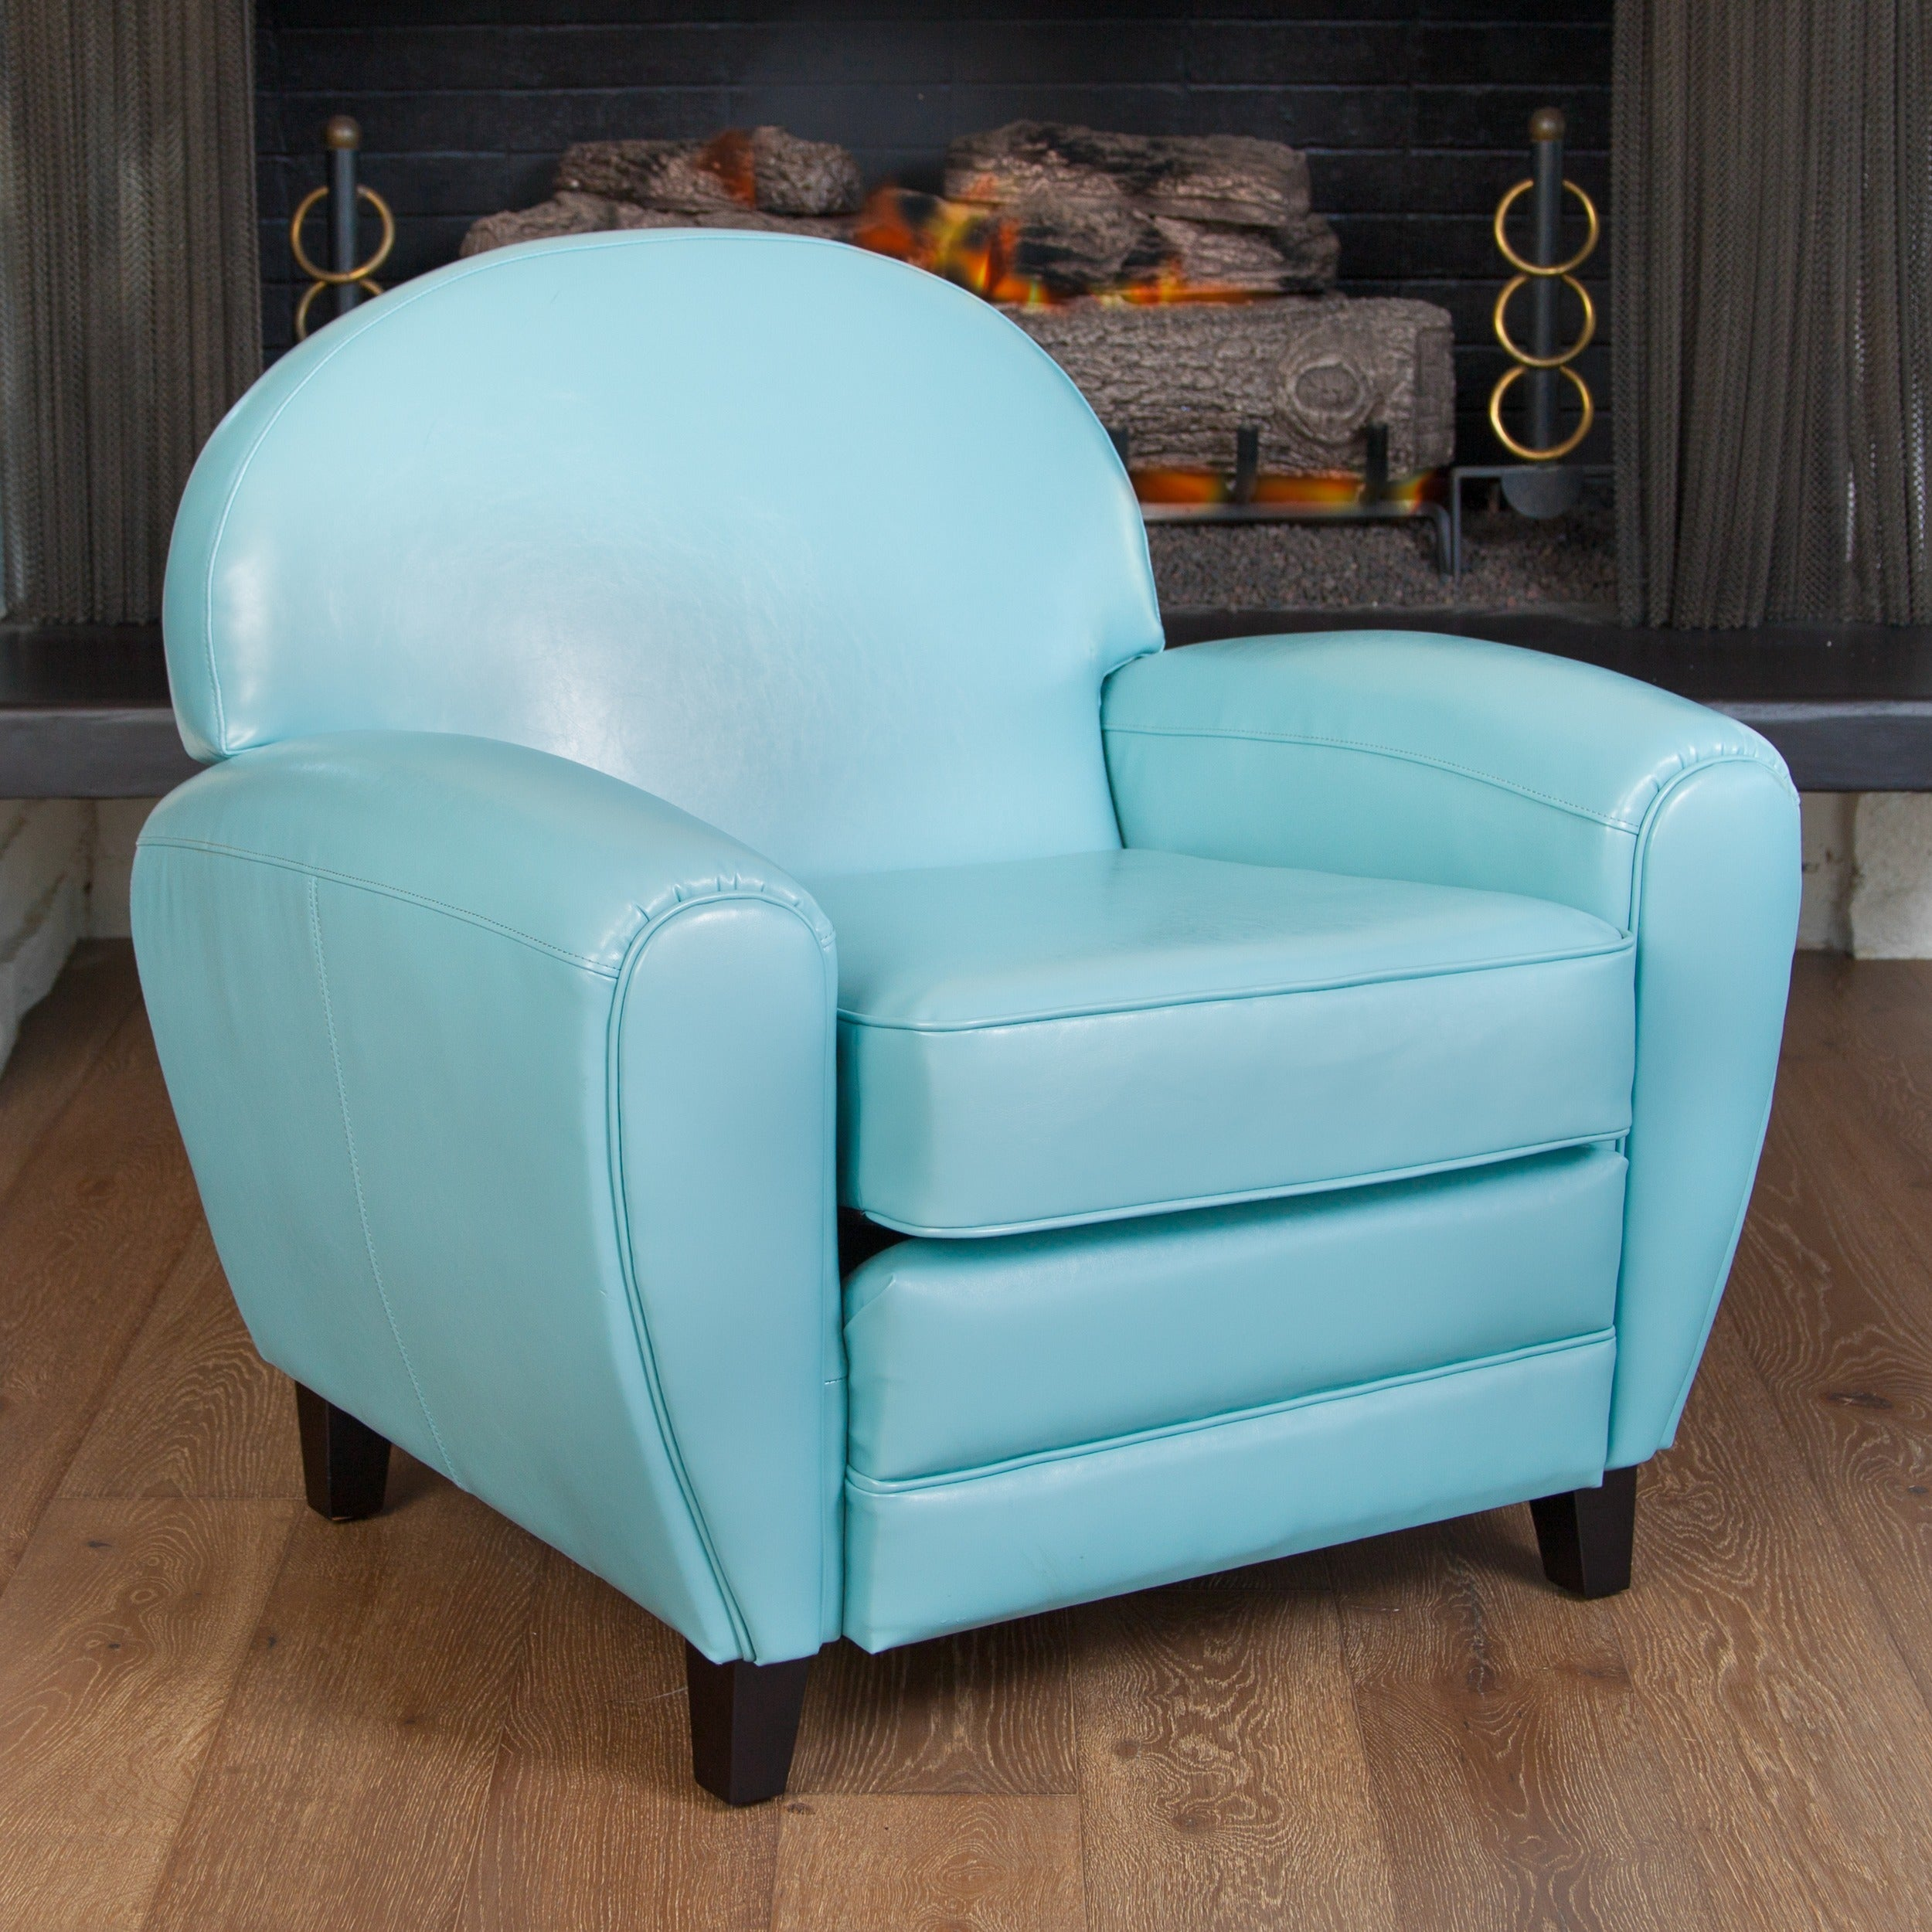 Superb David Teal Blue Leather Club Chair By Christopher Knight Home   Free  Shipping Today   Overstock.com   13593743